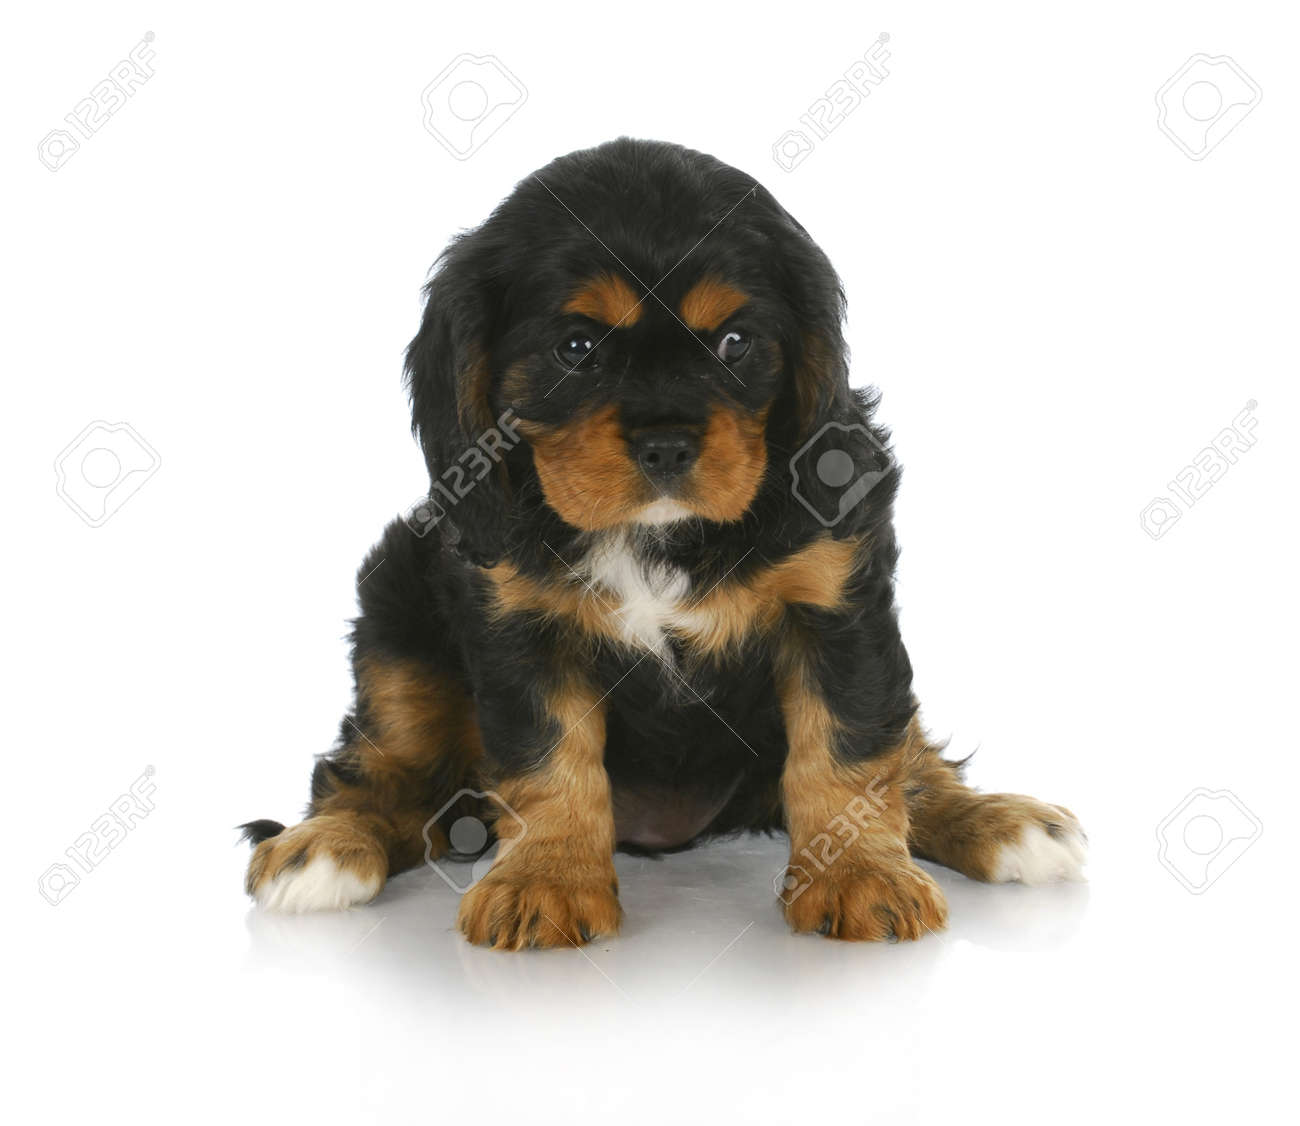 Download Charles Spaniel Brown Adorable Dog - 10594776-cute-puppy-black-and-tan-cavalier-king-charles-spaniel-puppy-sitting-6-weeks-old  Best Photo Reference_431462  .jpg